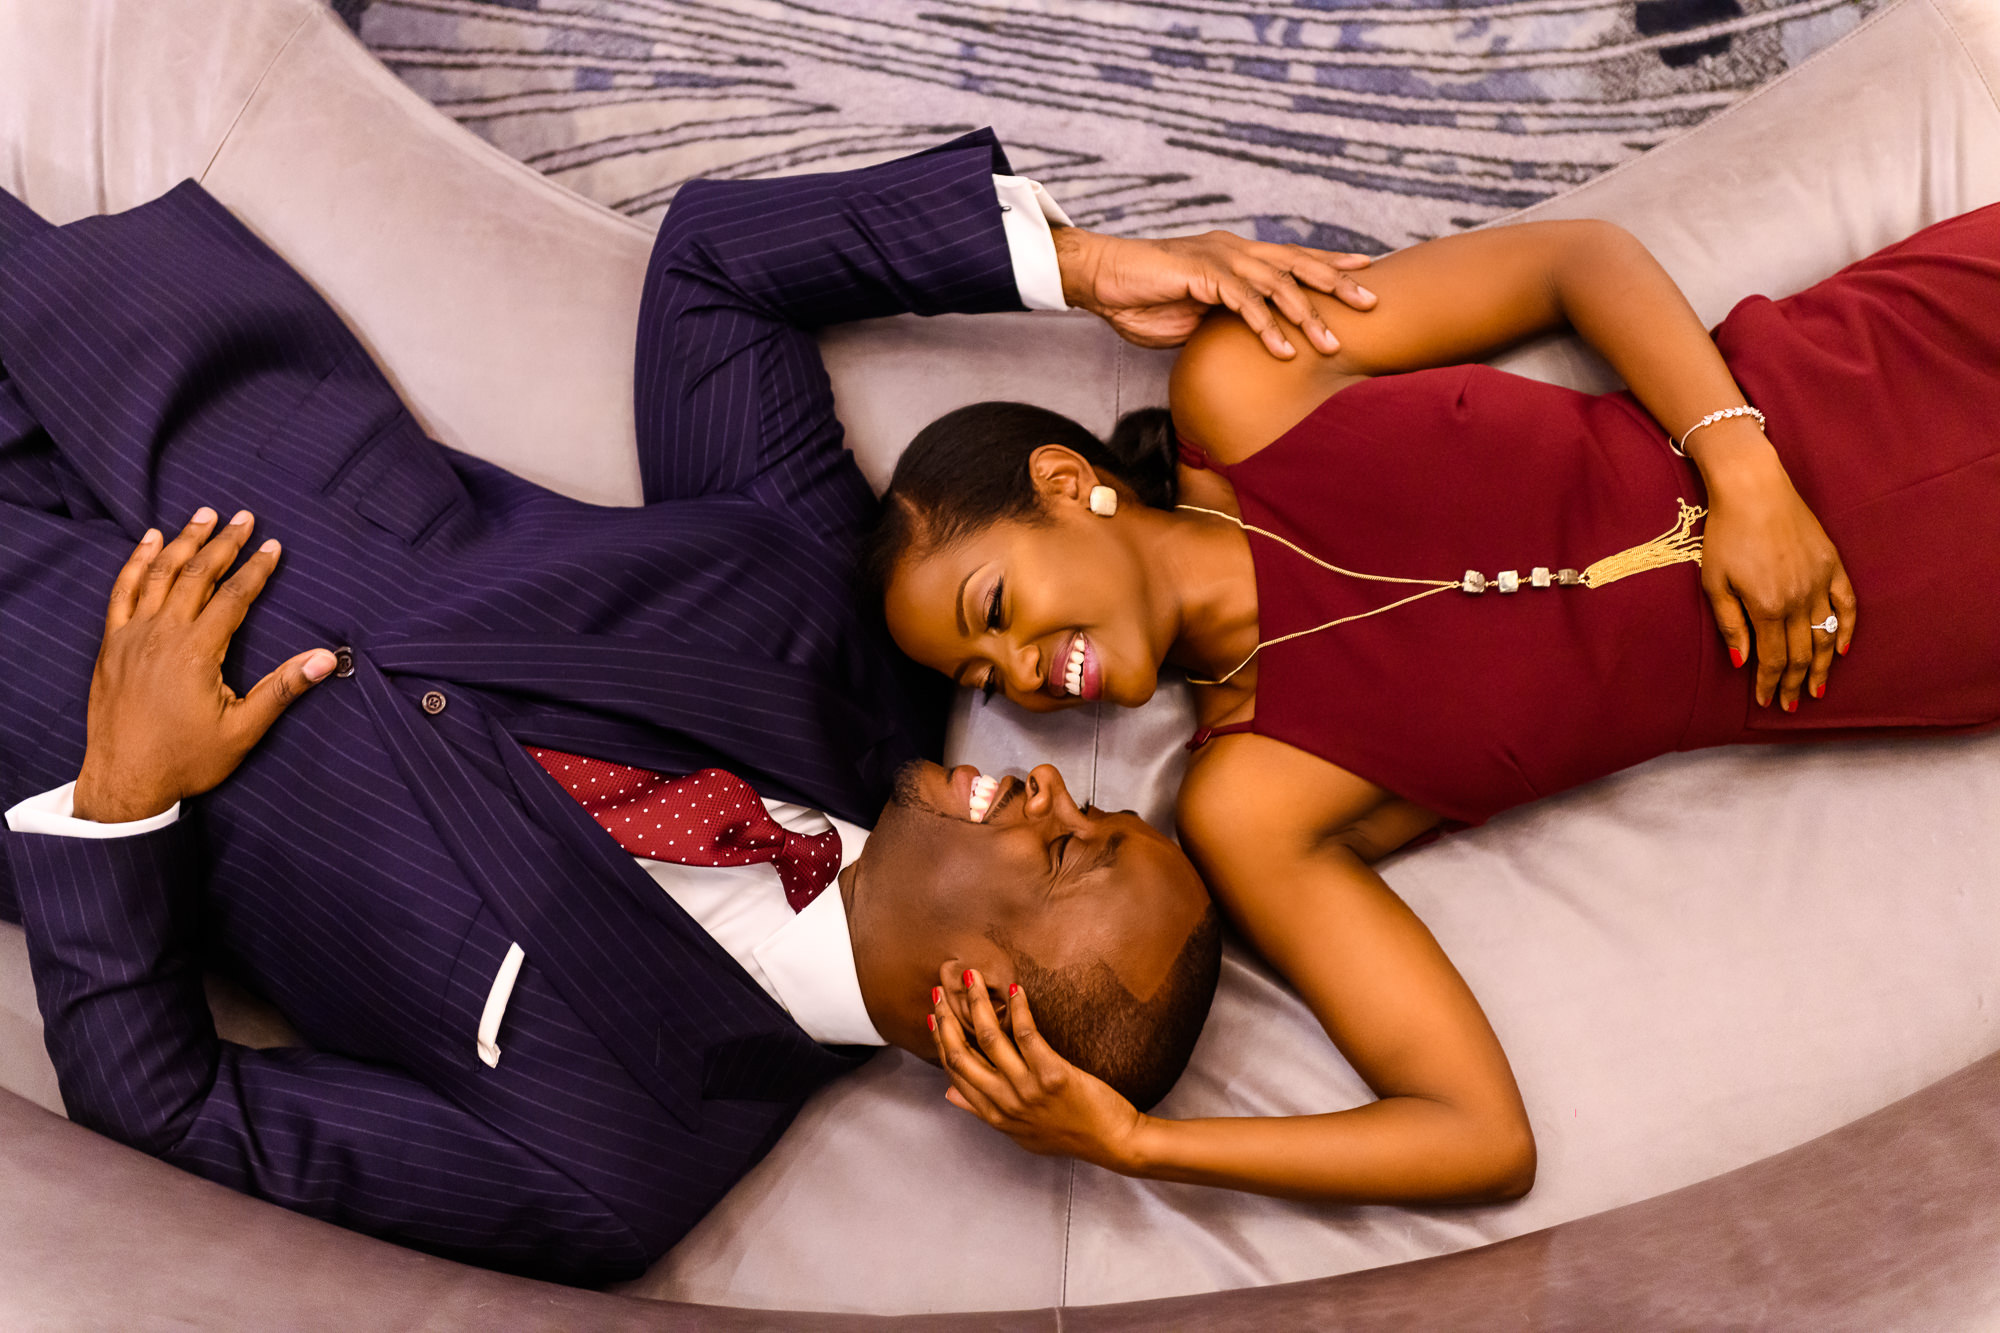 025-christopher-jason-studios-washington-dc-wharf-engagement-session-nigerian-couple-laying-on-couch-together.jpg